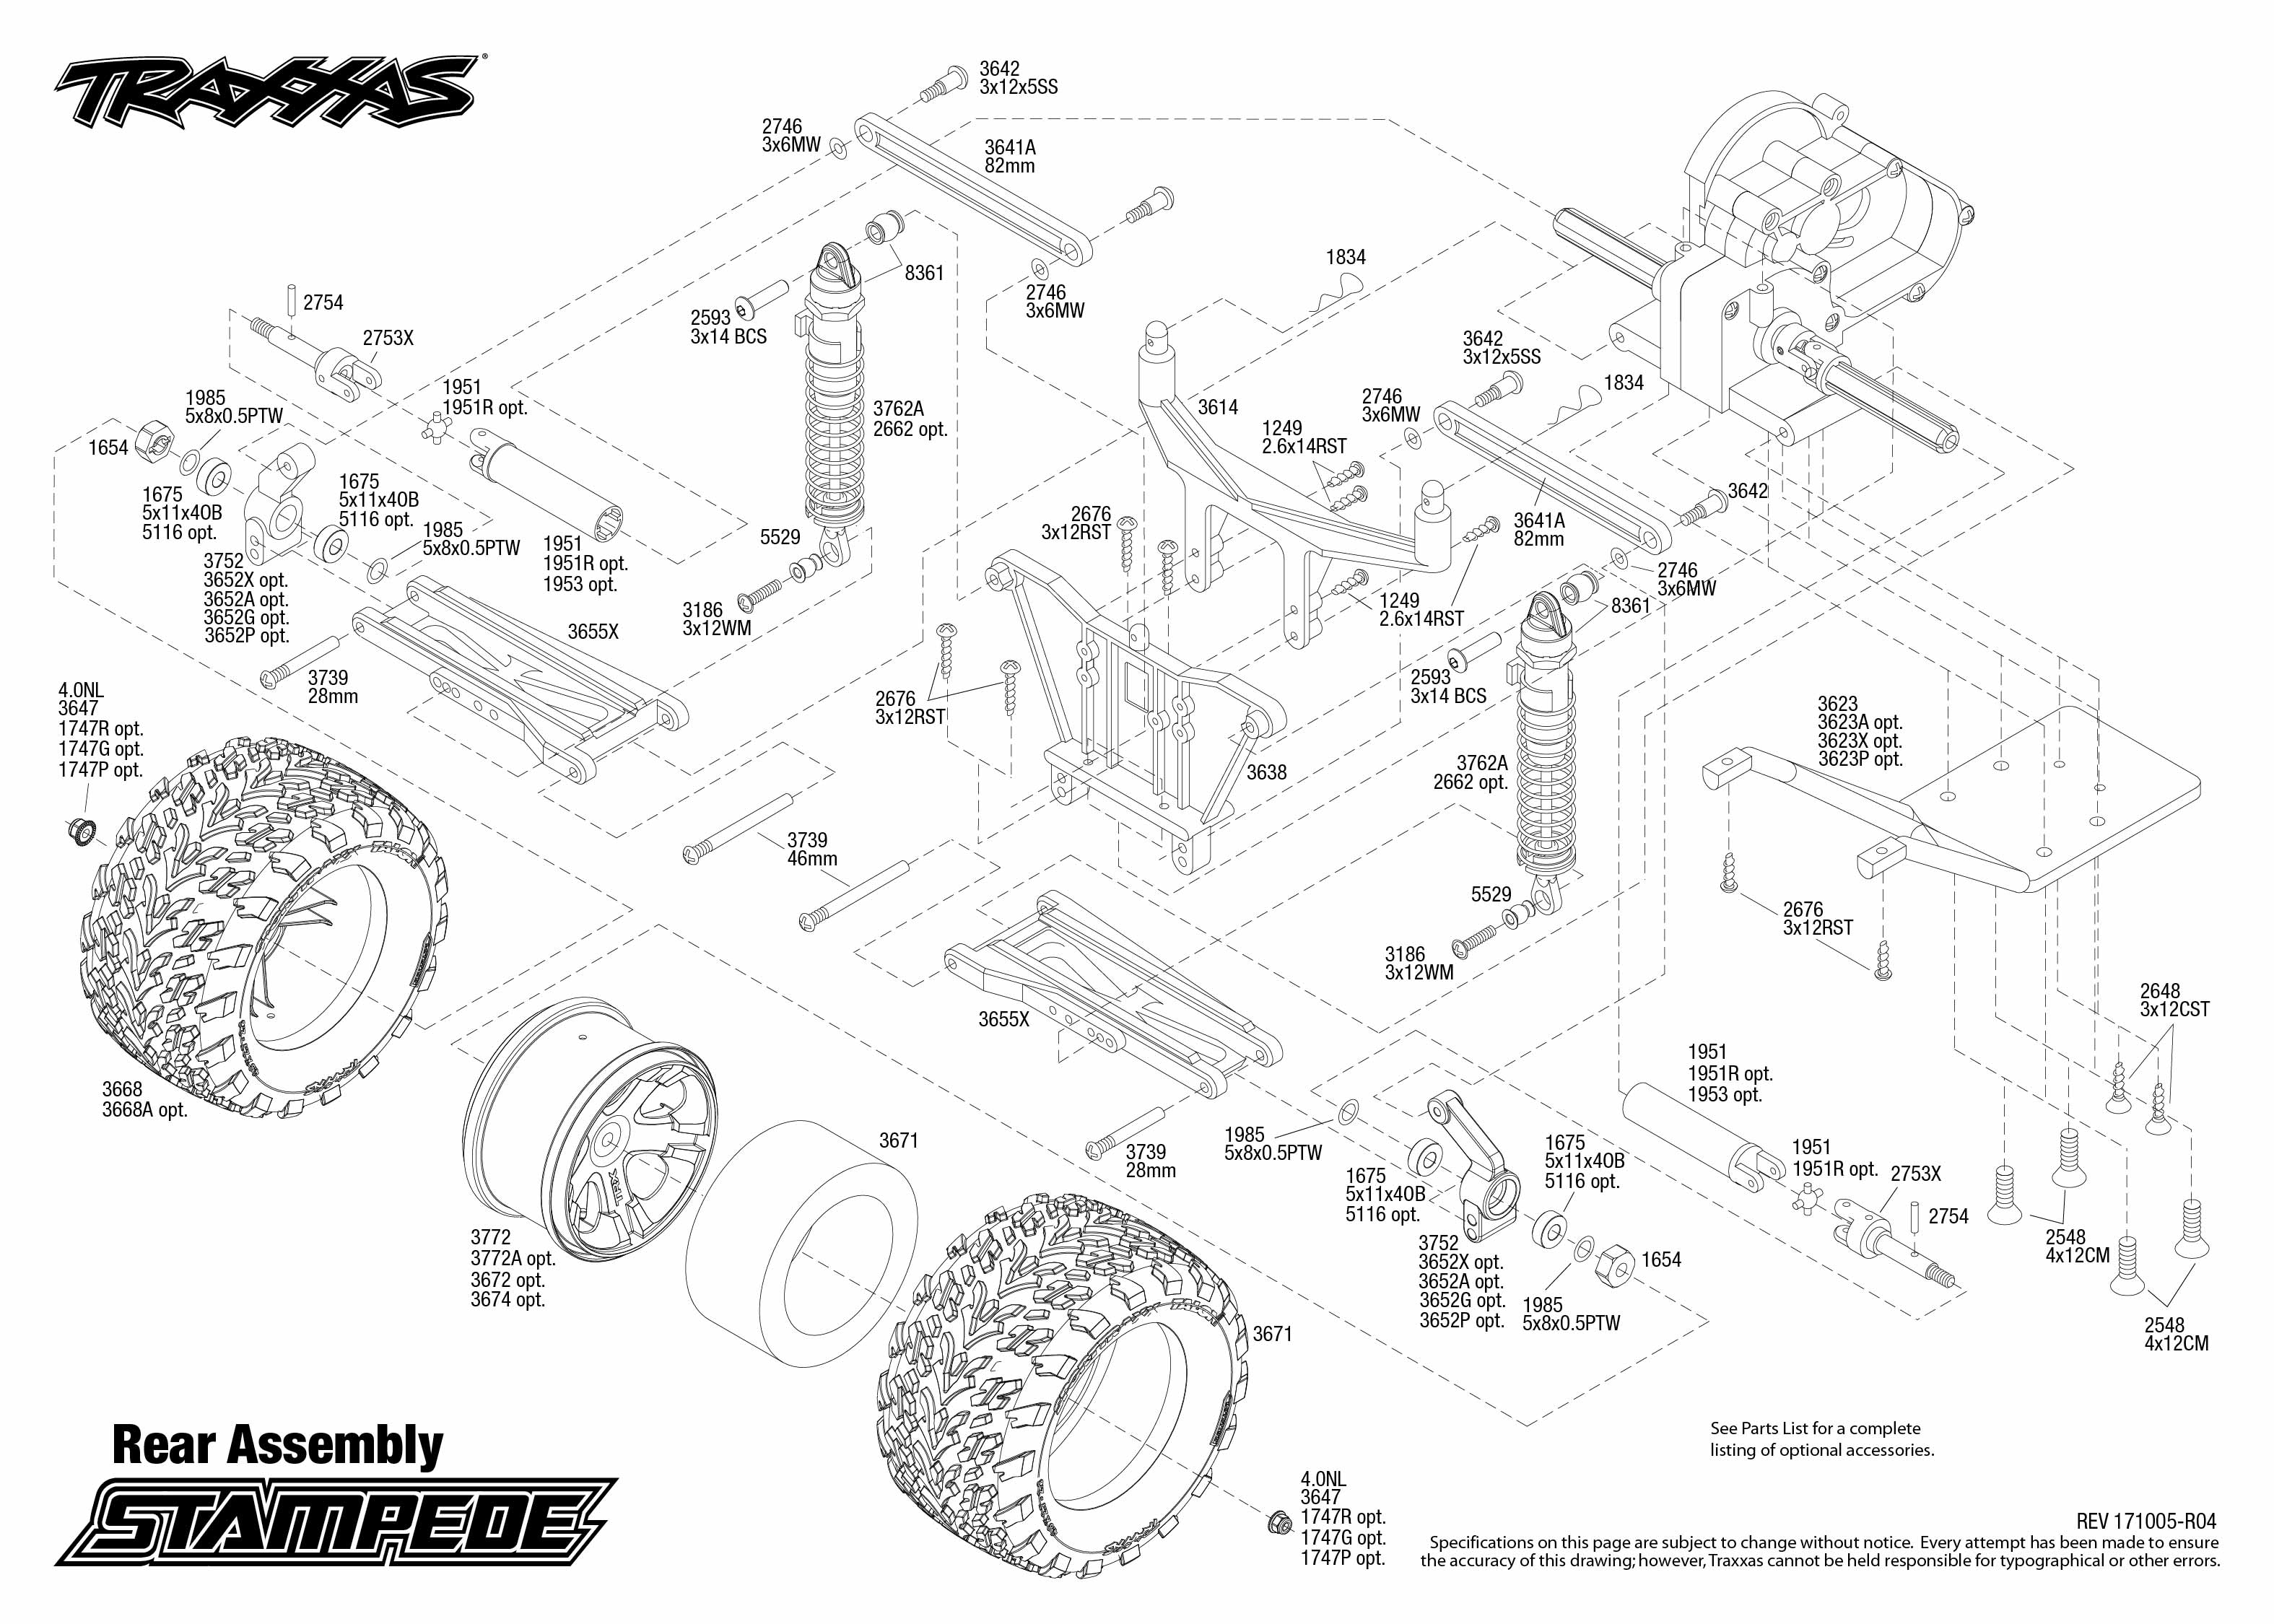 stampede 36054 1 rear assembly exploded view traxxas rh traxxas com traxxas stampede 2x4 parts diagram traxxas stampede 2x4 parts diagram